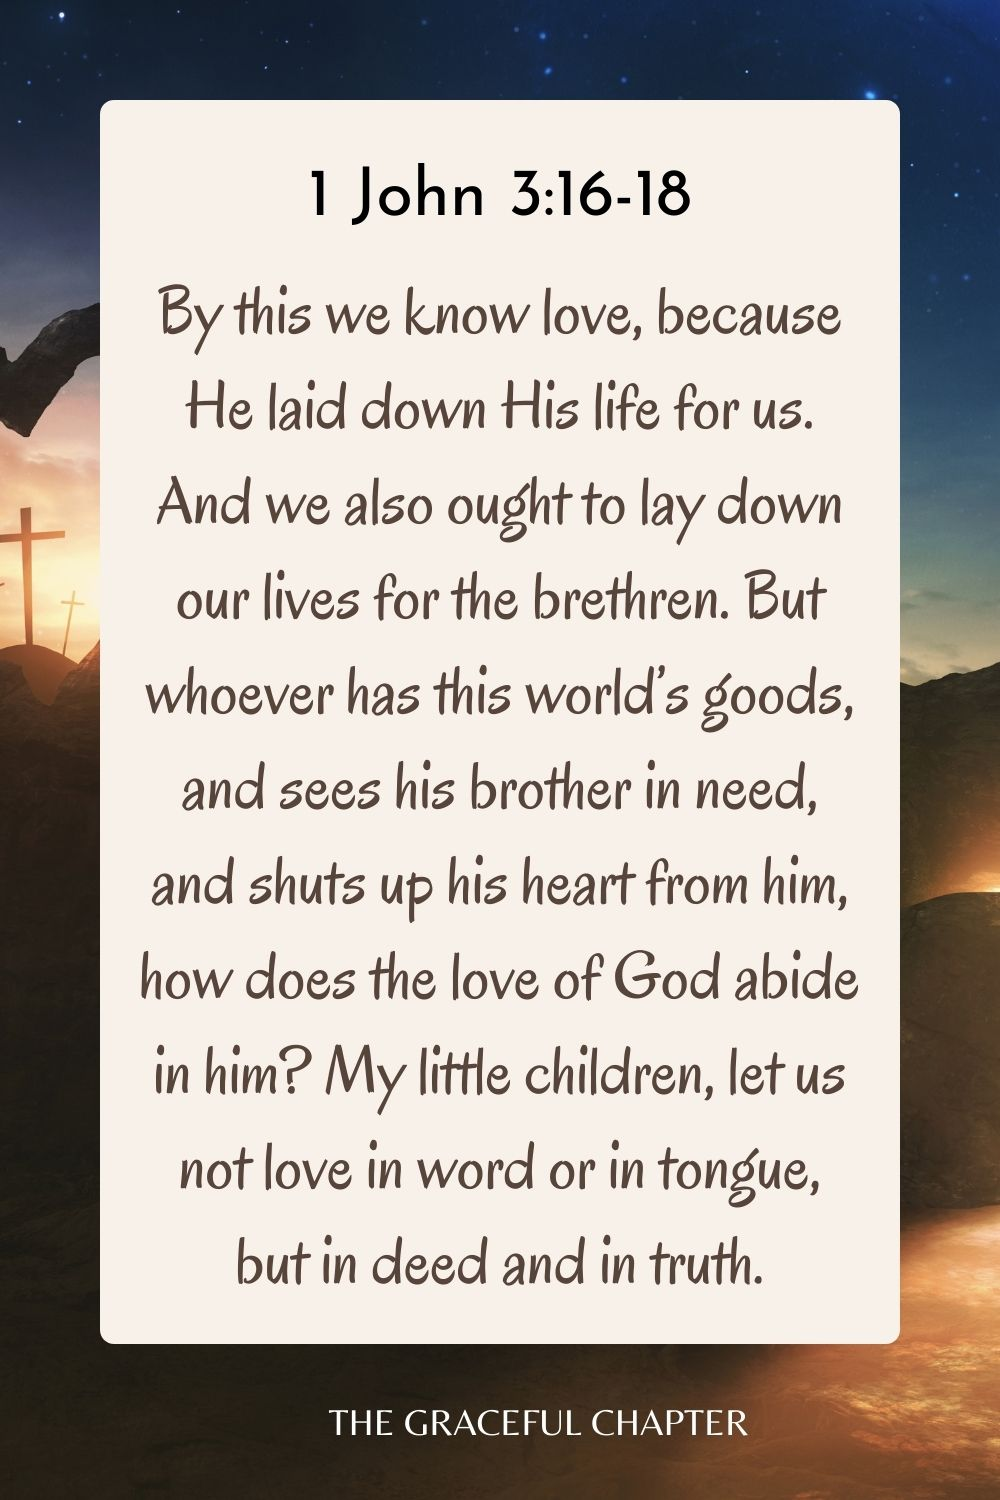 By this we know love, because He laid down His life for us. And we also ought to lay down our lives for the brethren. But whoever has this world's goods, and sees his brother in need, and shuts up his heart from him, how does the love of God abide in him? My little children, let us not love in word or in tongue, but in deed and in truth. 1 John 3:16-18